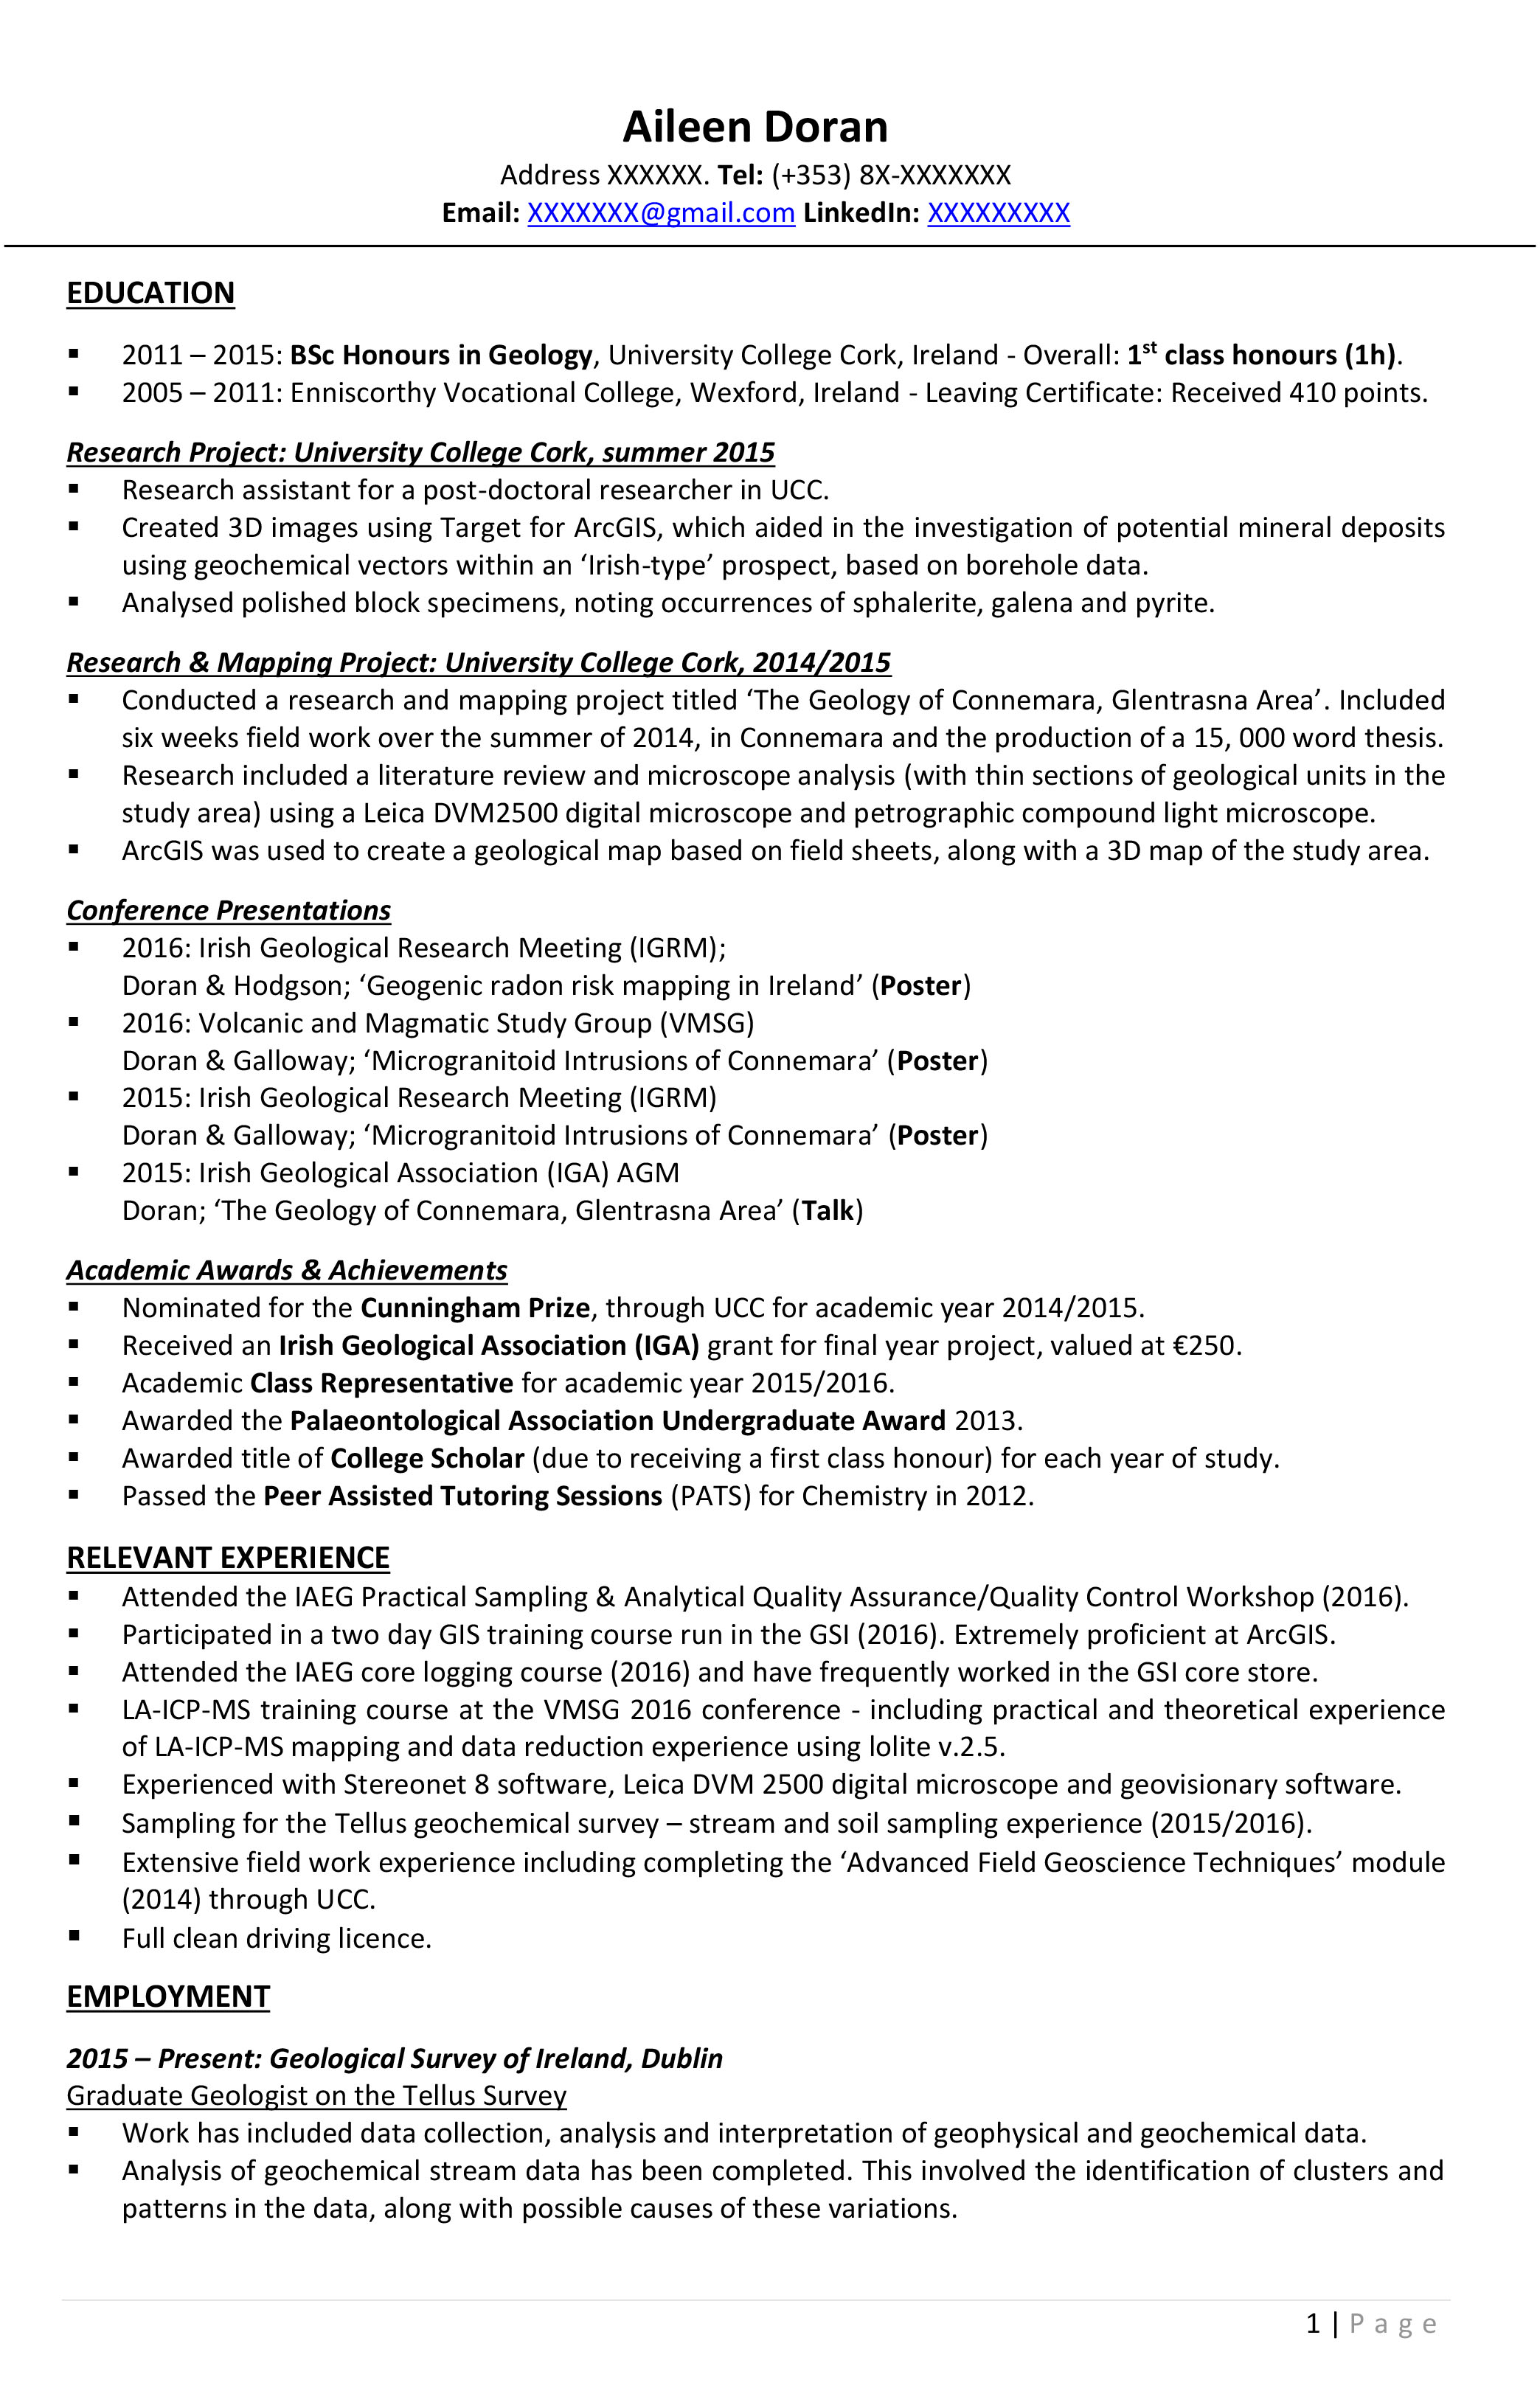 Good resume for phd application